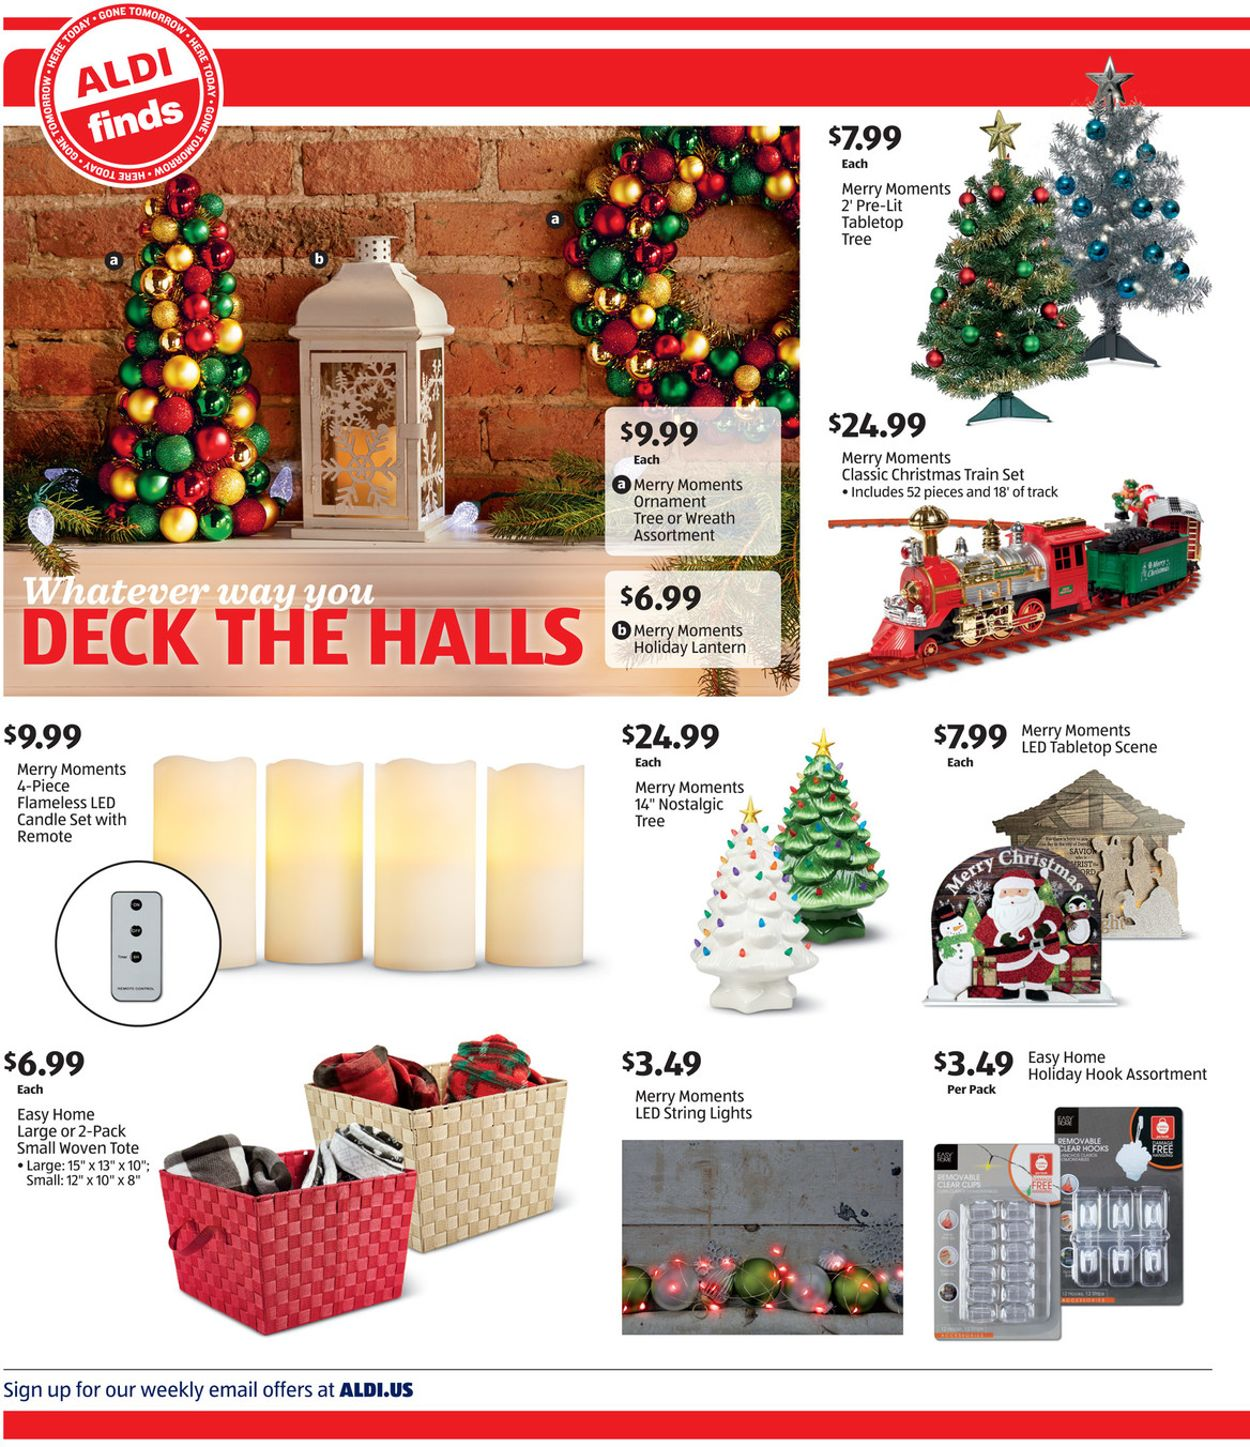 Aldi Artificial Christmas 2020 Tree ALDI Current weekly ad 11/20   11/26/2019 [2]   frequent ads.com